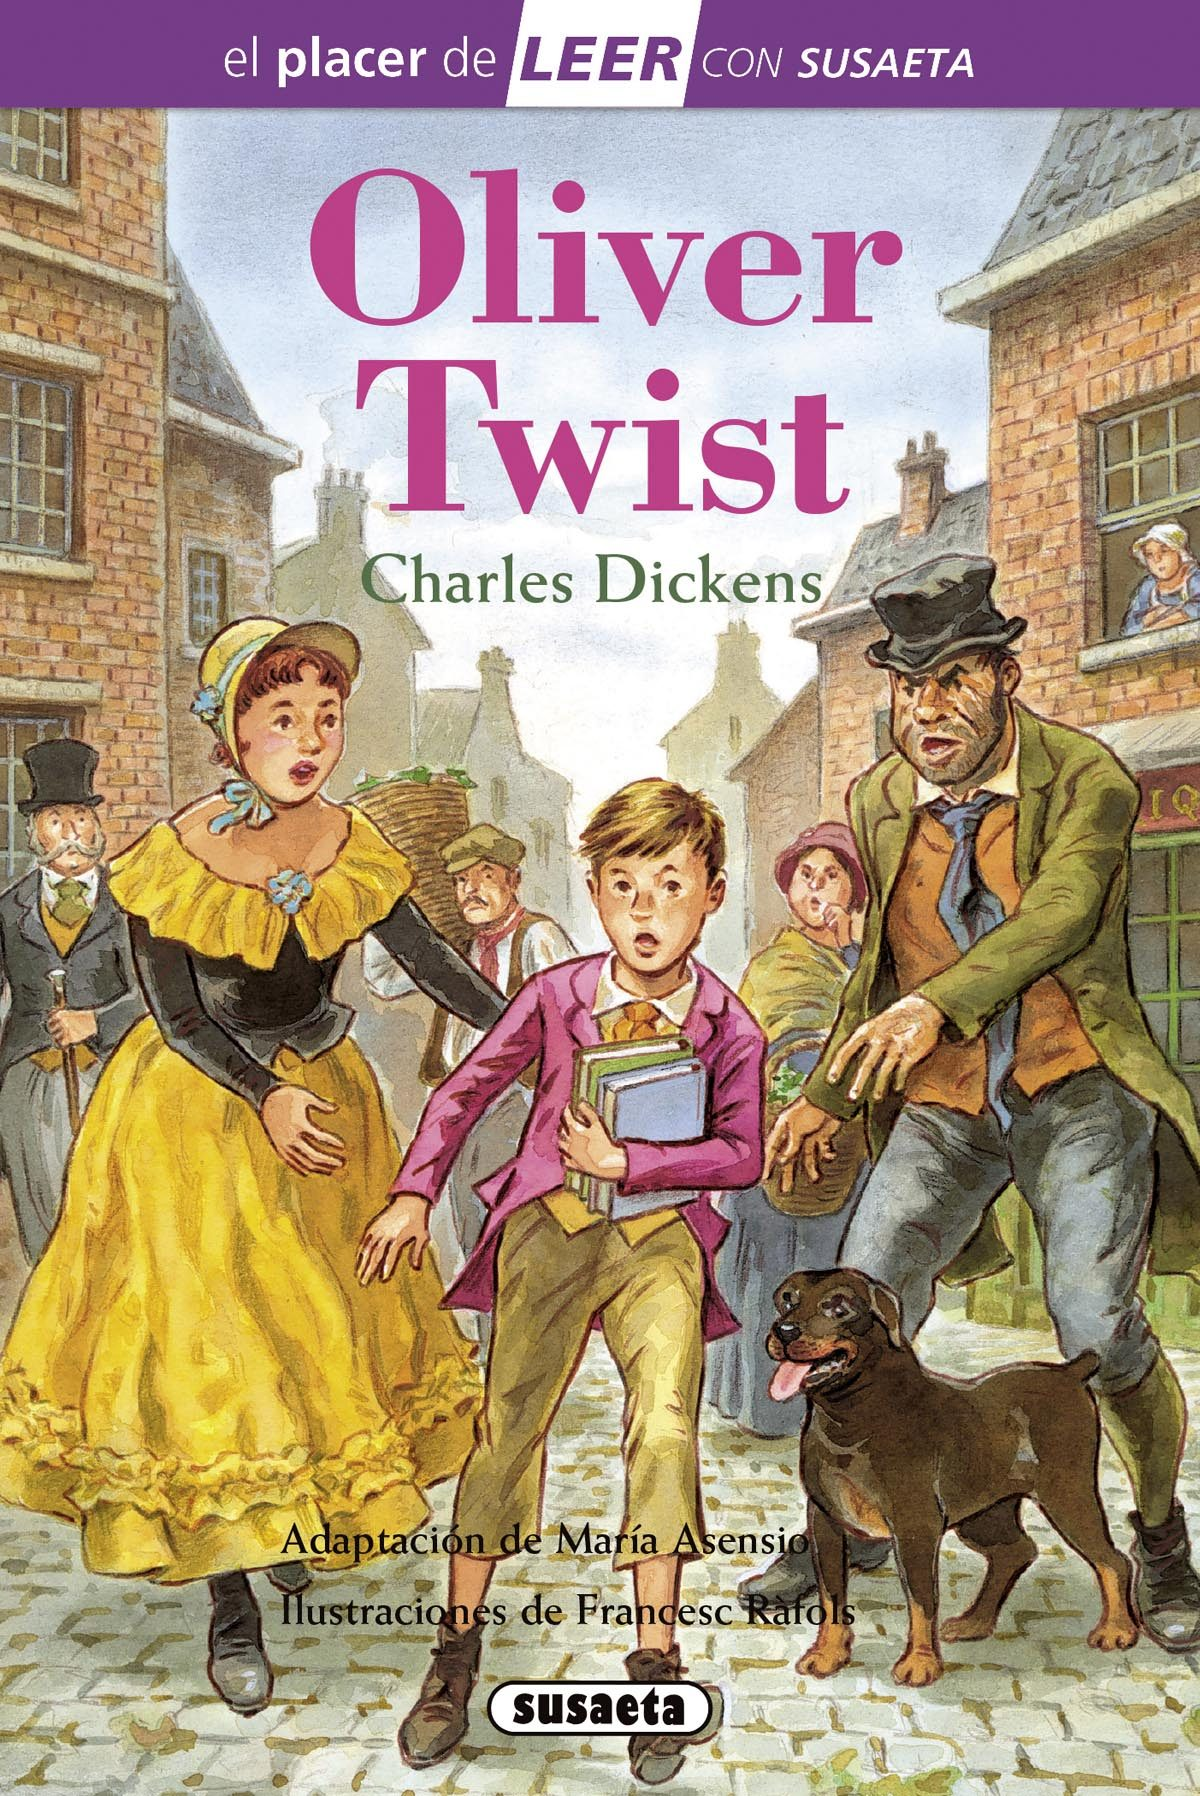 Oliver twist; charles dickens